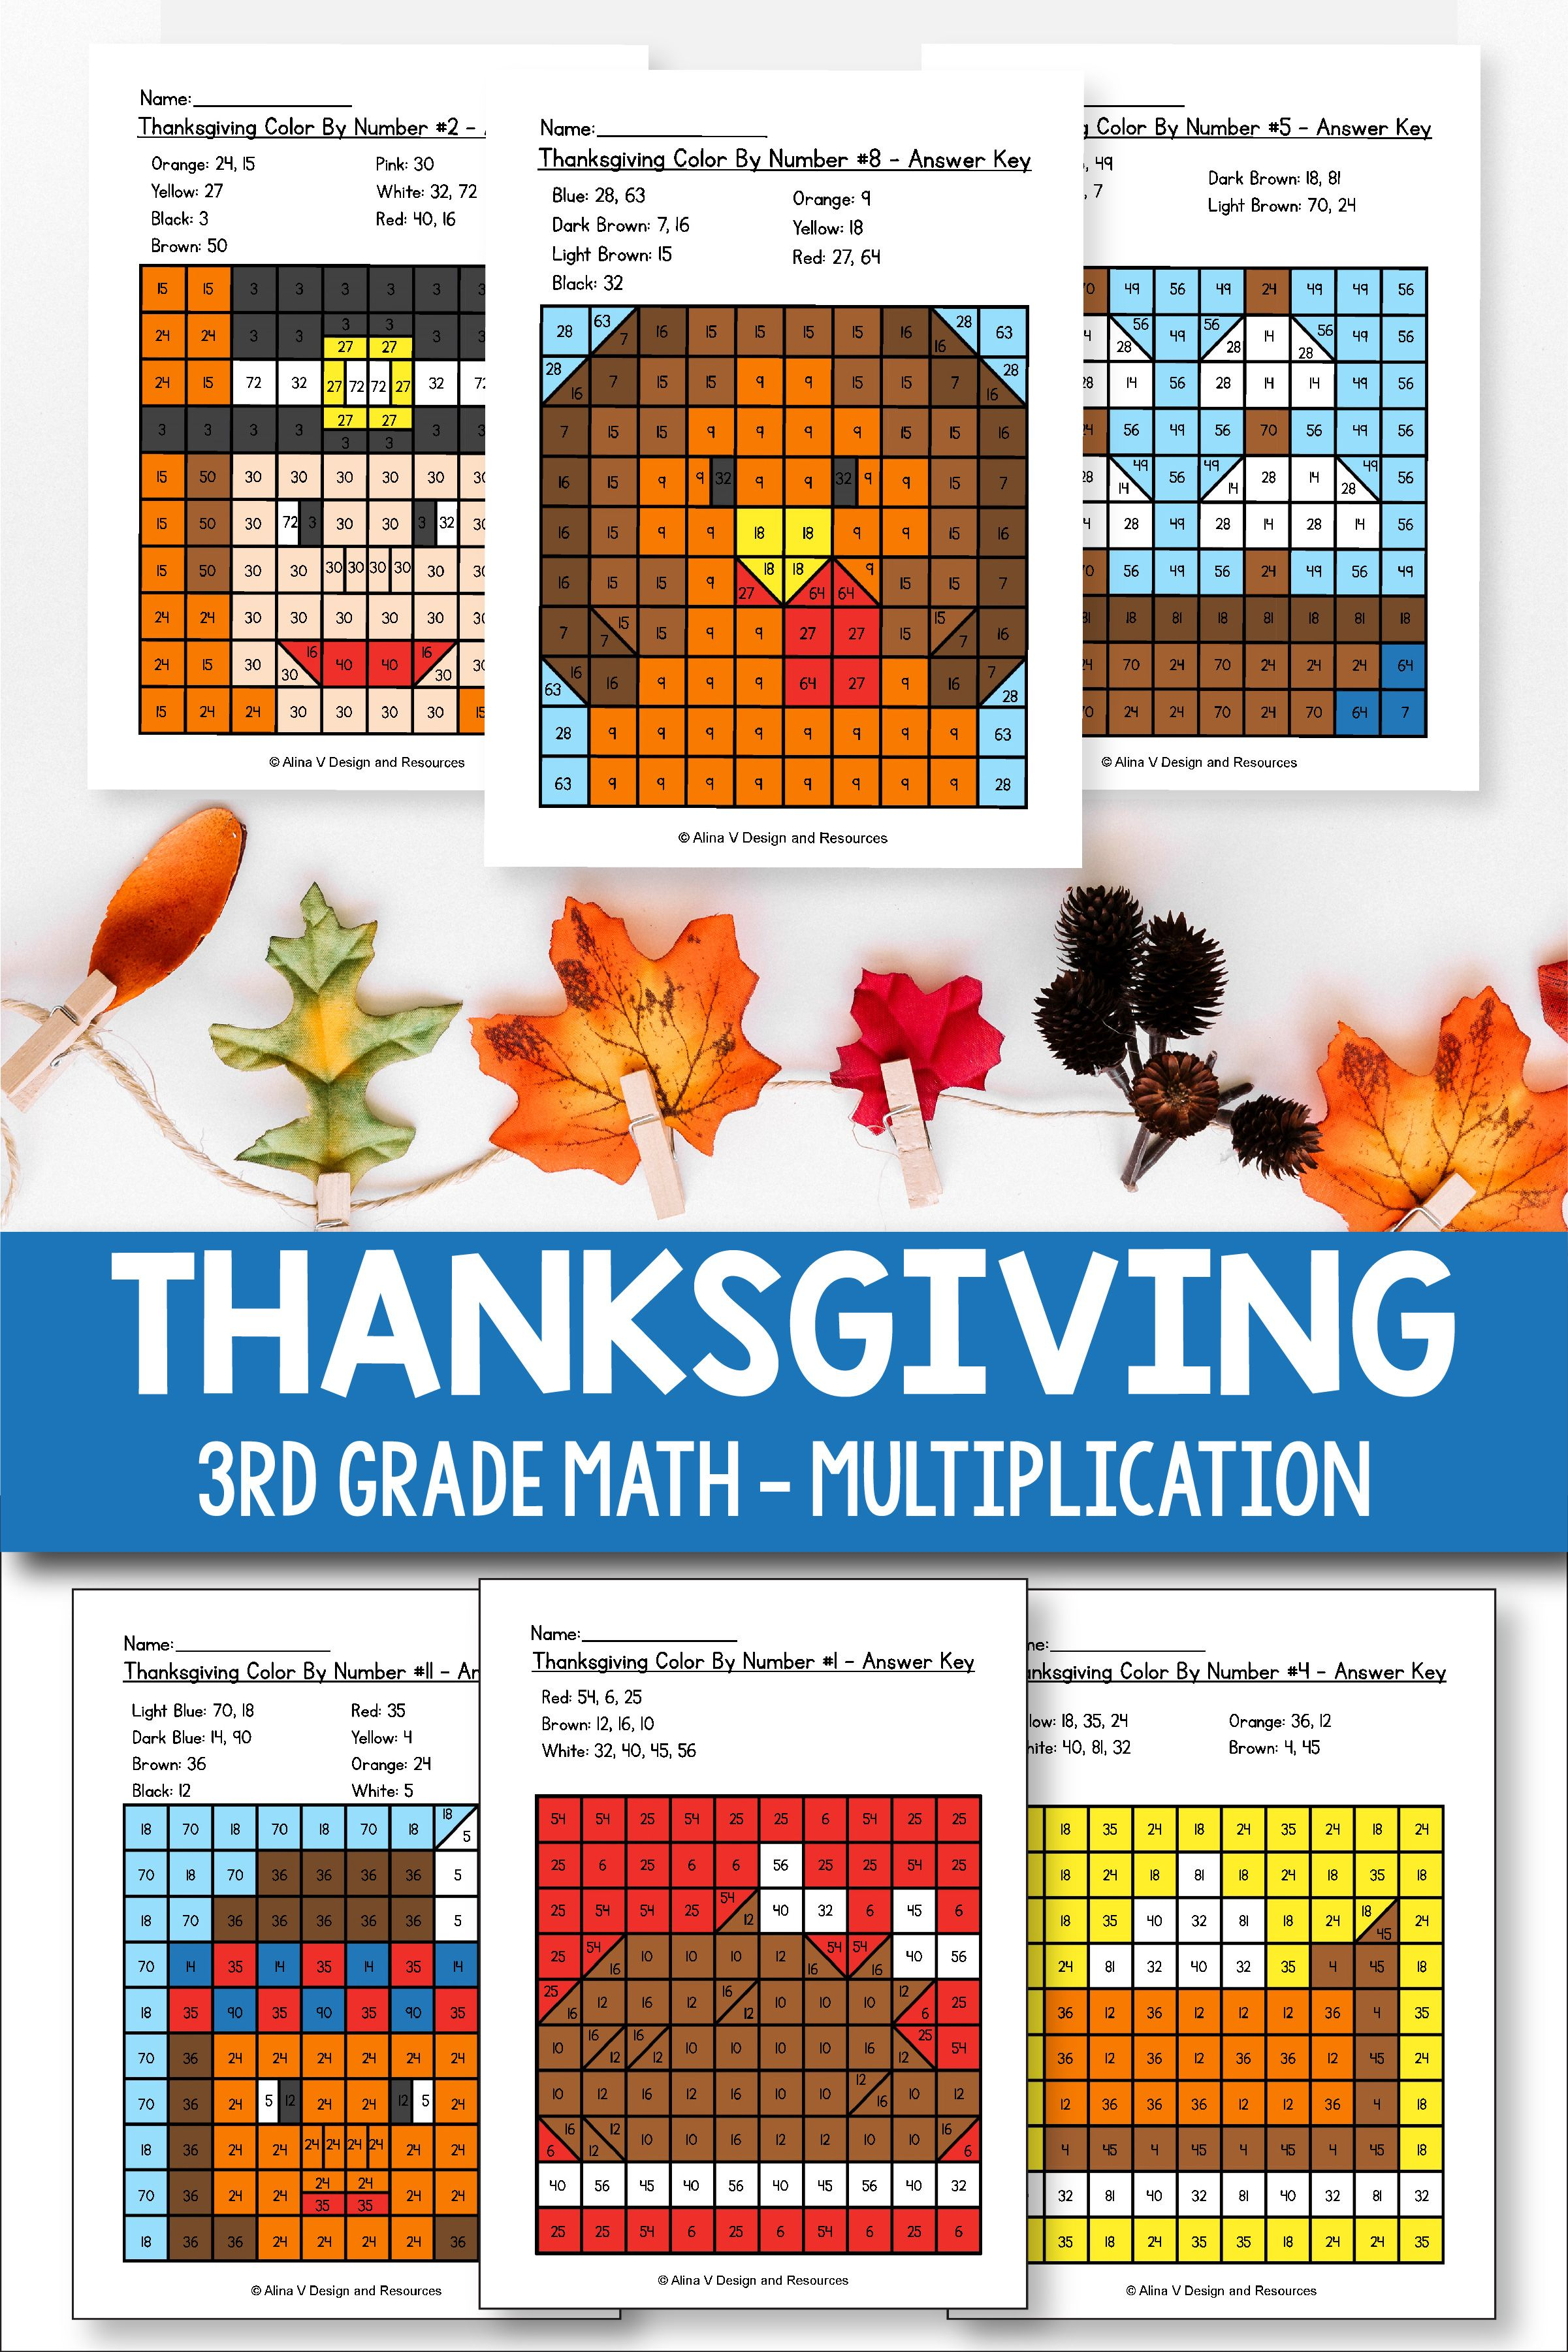 Thanksgiving Multiplication Math Worksheets For 3rd Grade Kids Is Fun With These Hun Thanksgiving Math Worksheets Thanksgiving Math Thanksgiving Multiplication [ 3601 x 2401 Pixel ]